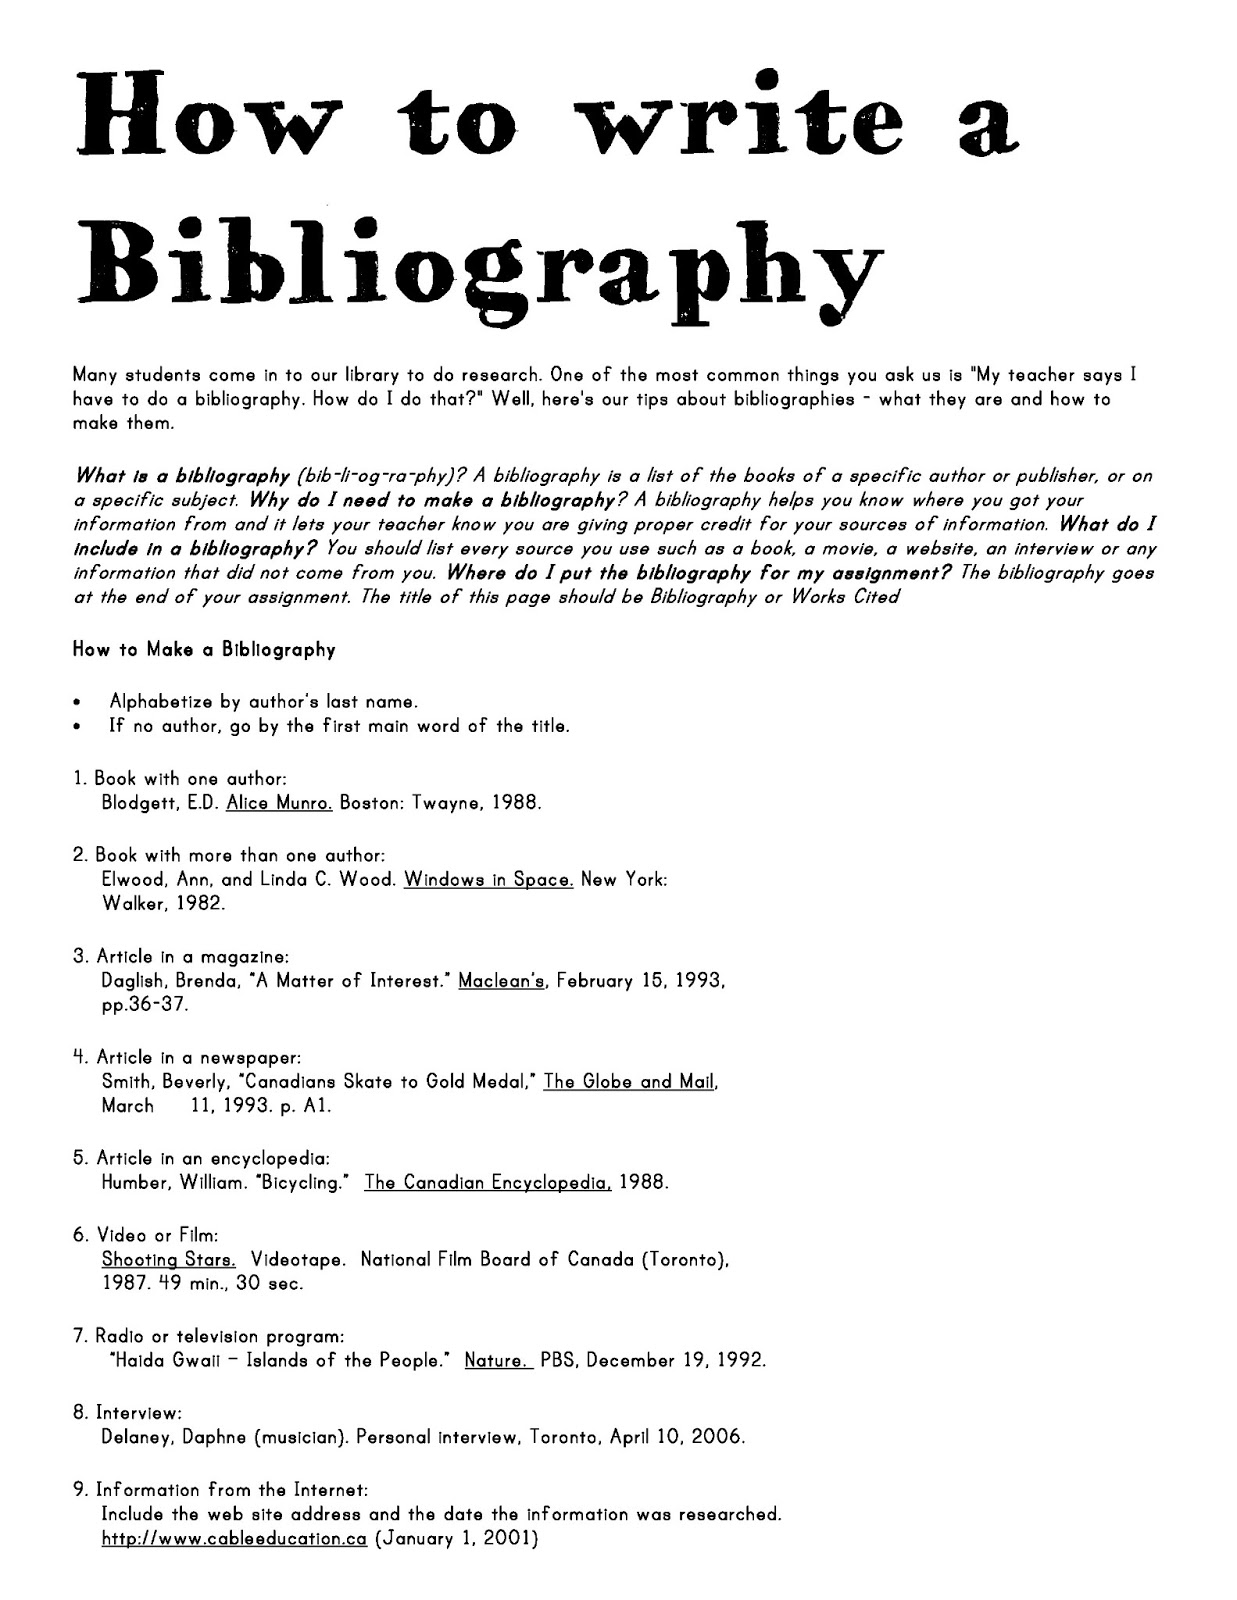 bibliography of a book